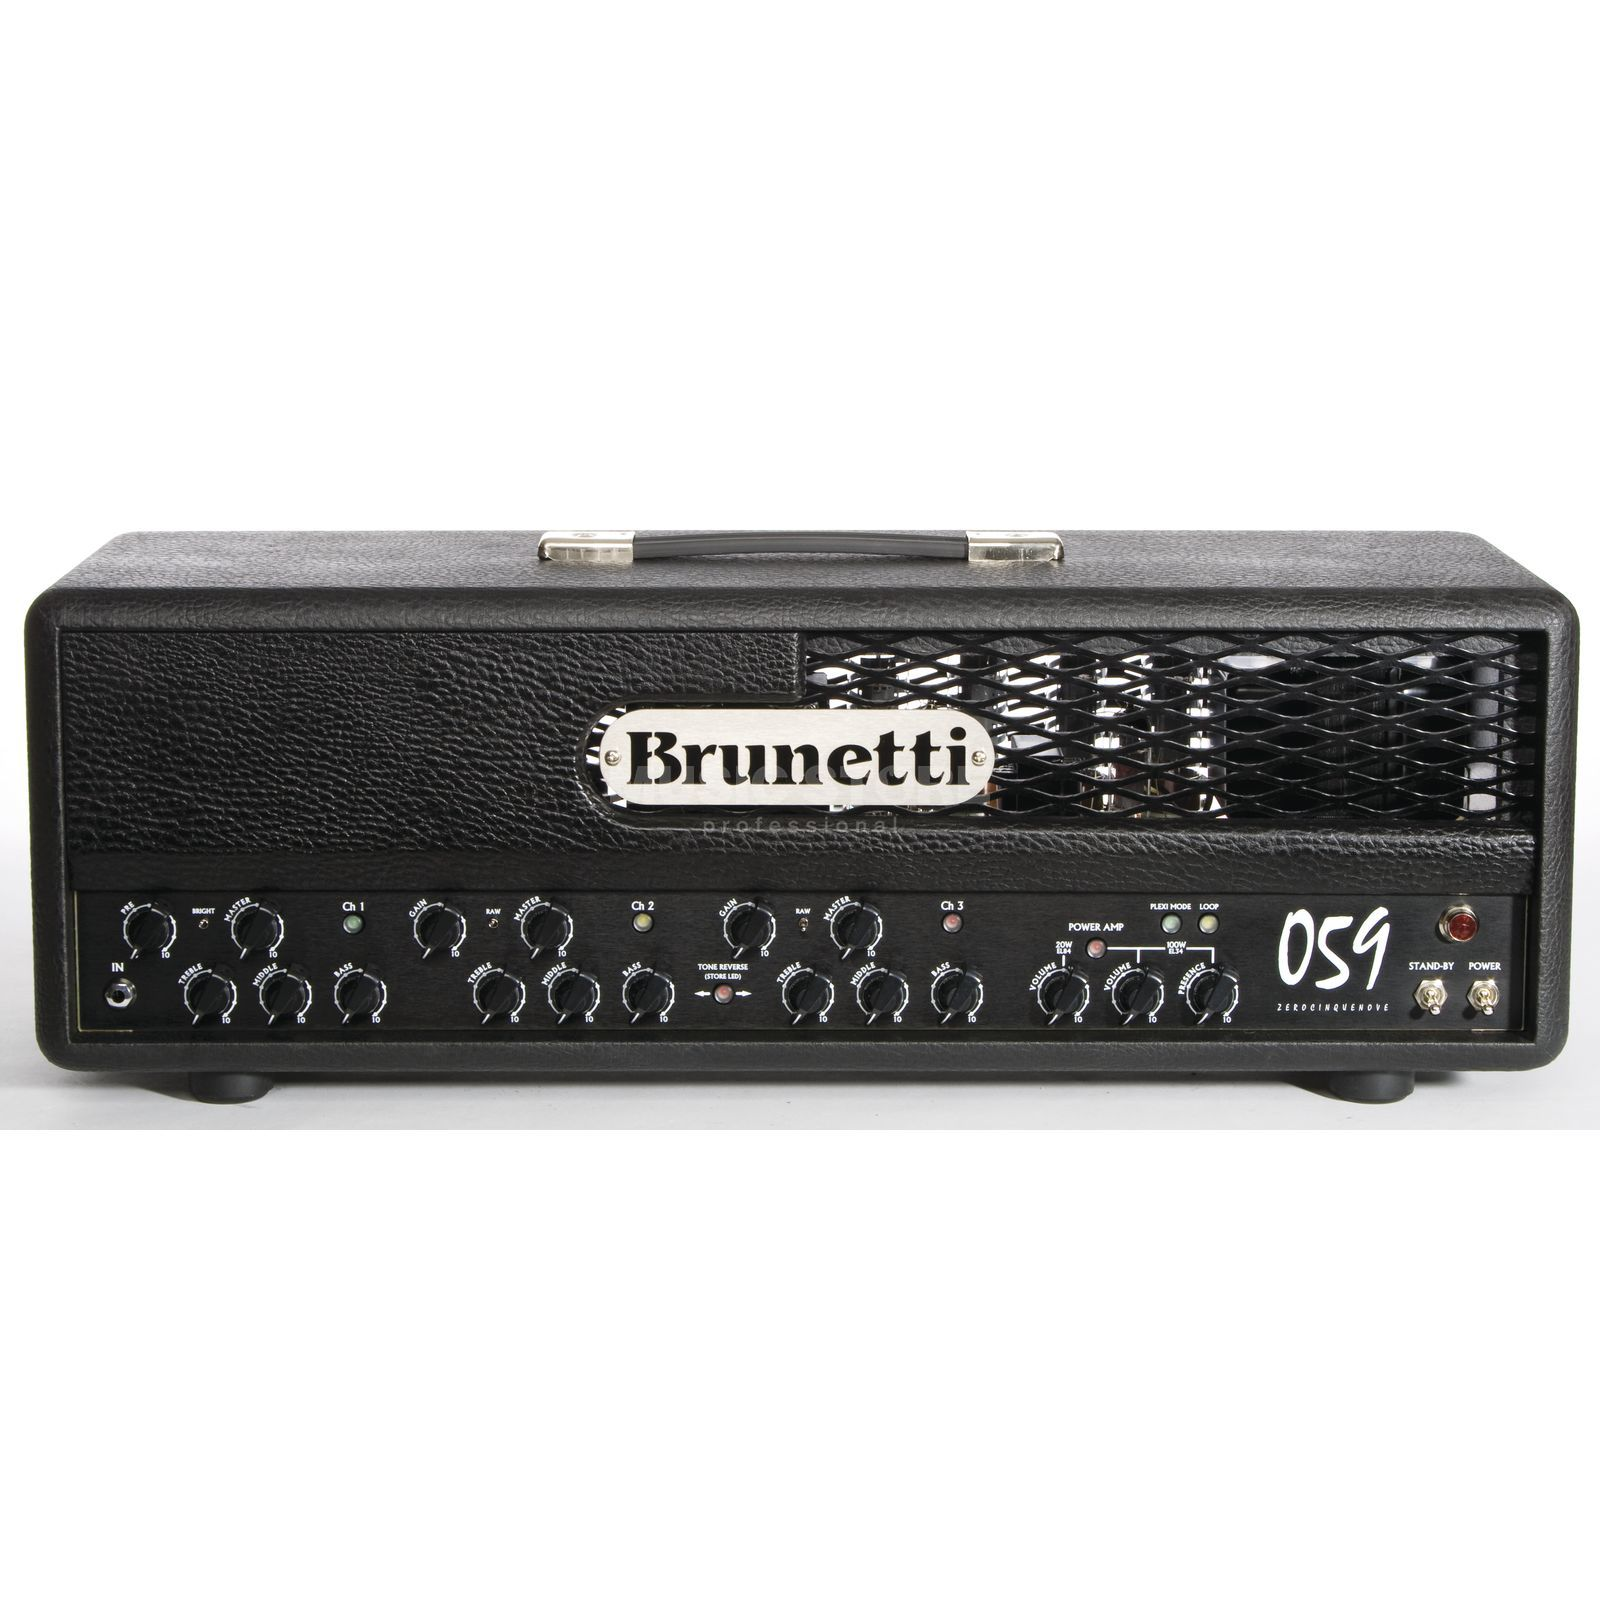 Brunetti Amps 059 Head DEMO Produktbild